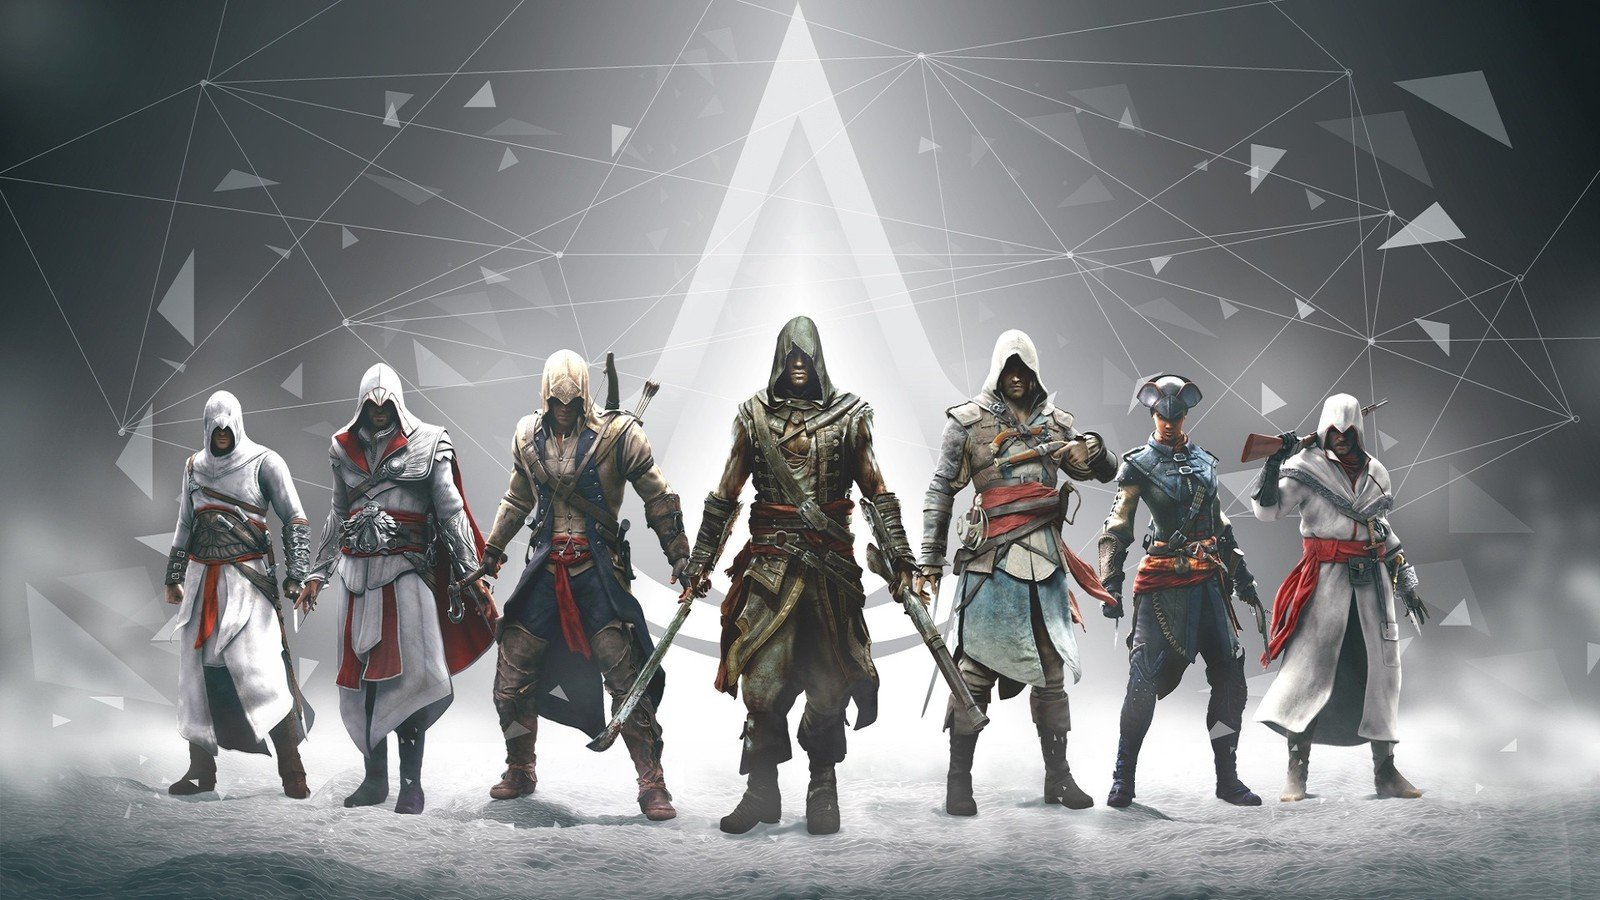 Playstation Discounts All The Assassin S Creed Games By At Least Half